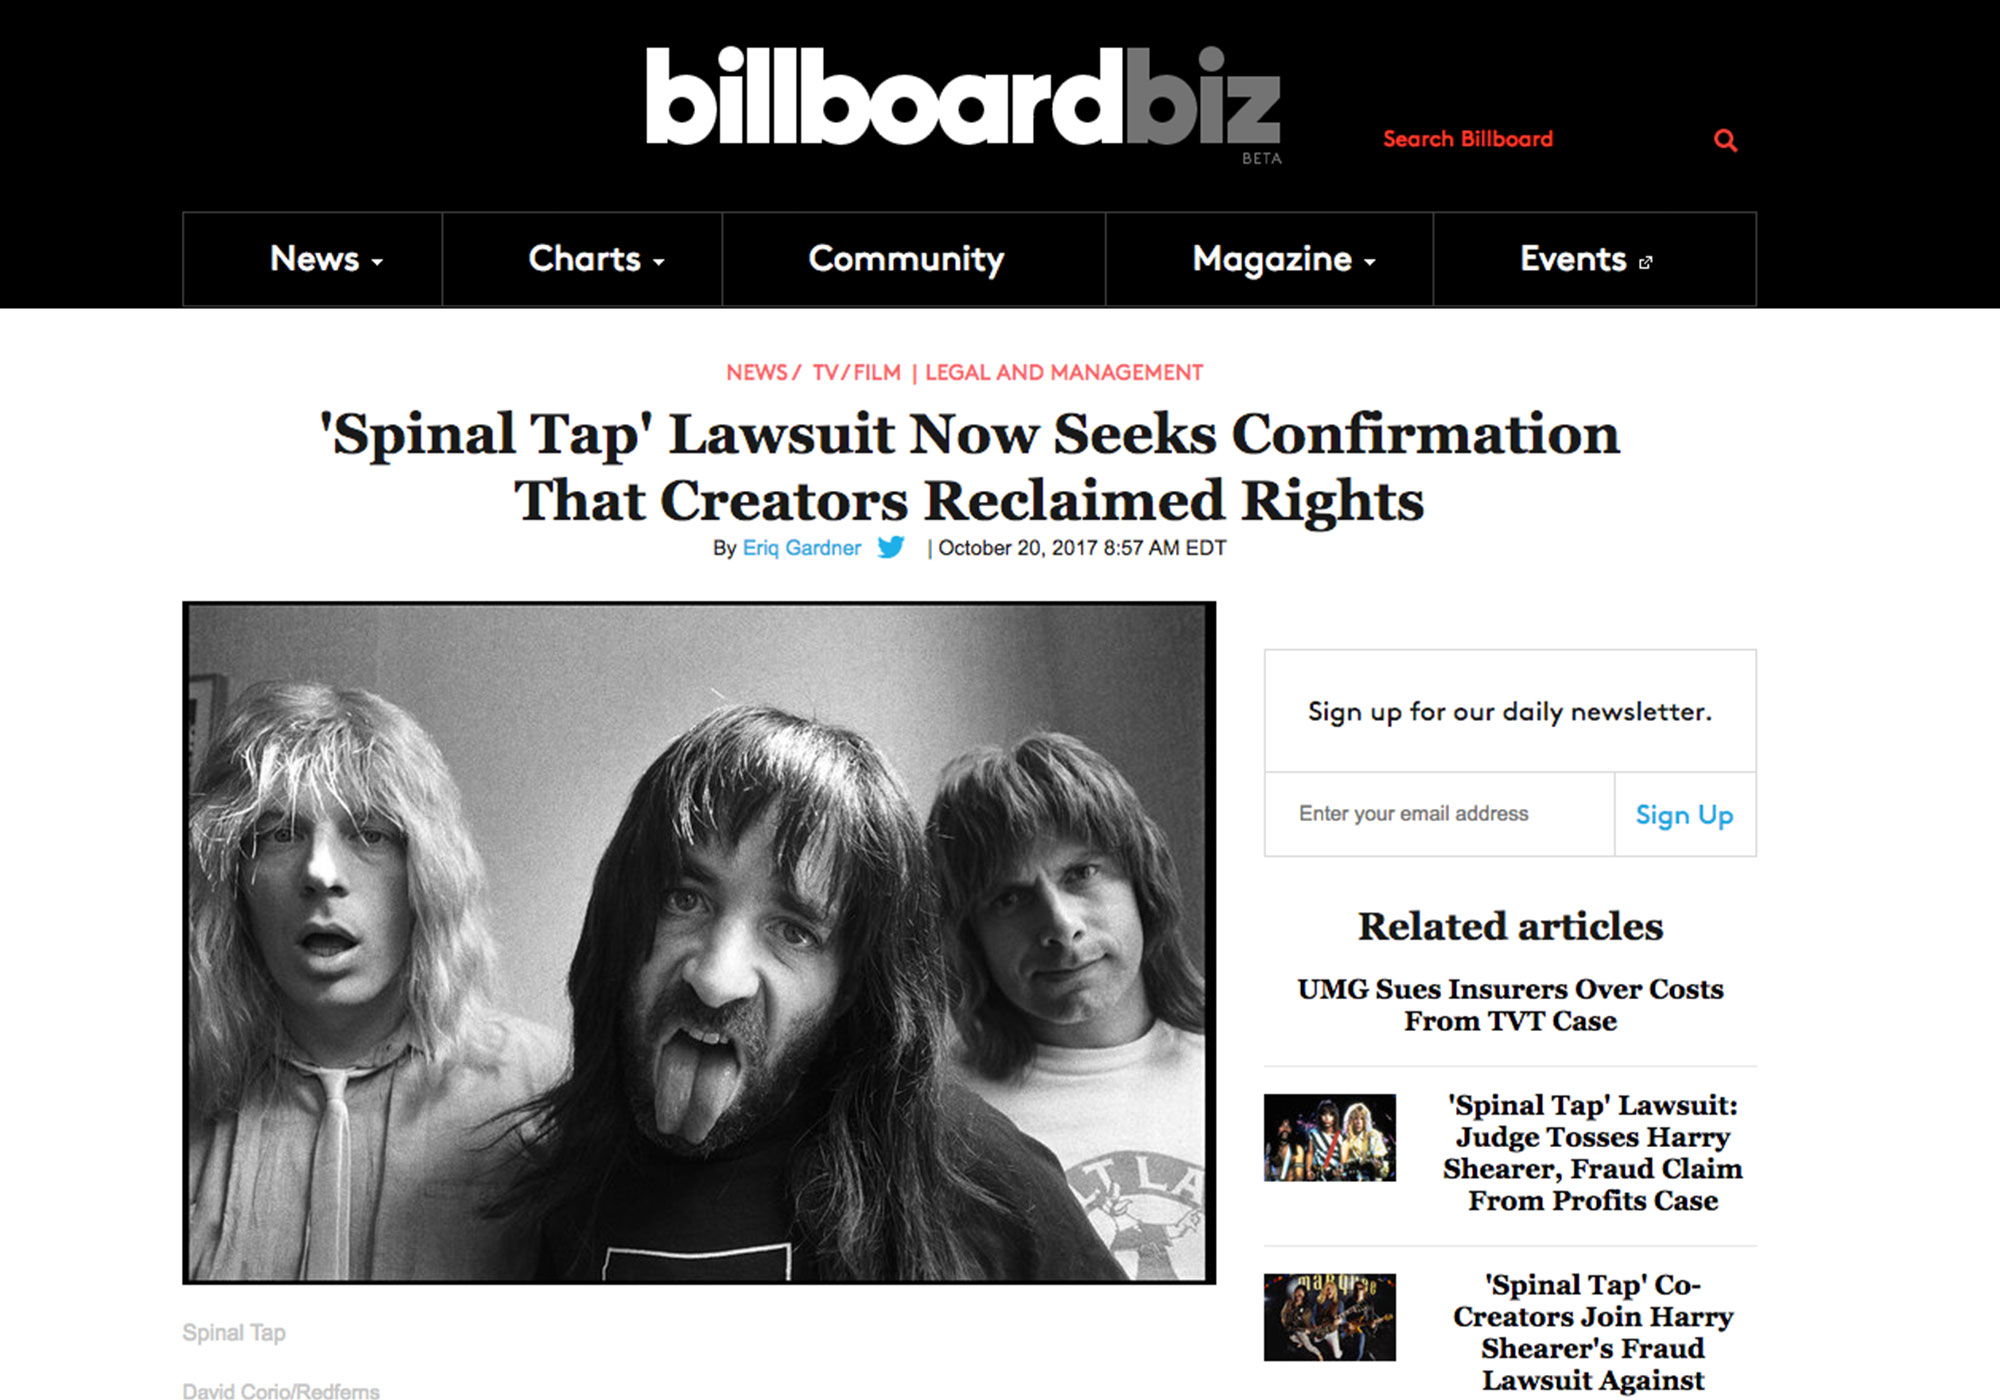 Fairness Rocks News 'Spinal Tap' Lawsuit Now Seeks Confirmation That Creators Reclaimed Rights Billboard